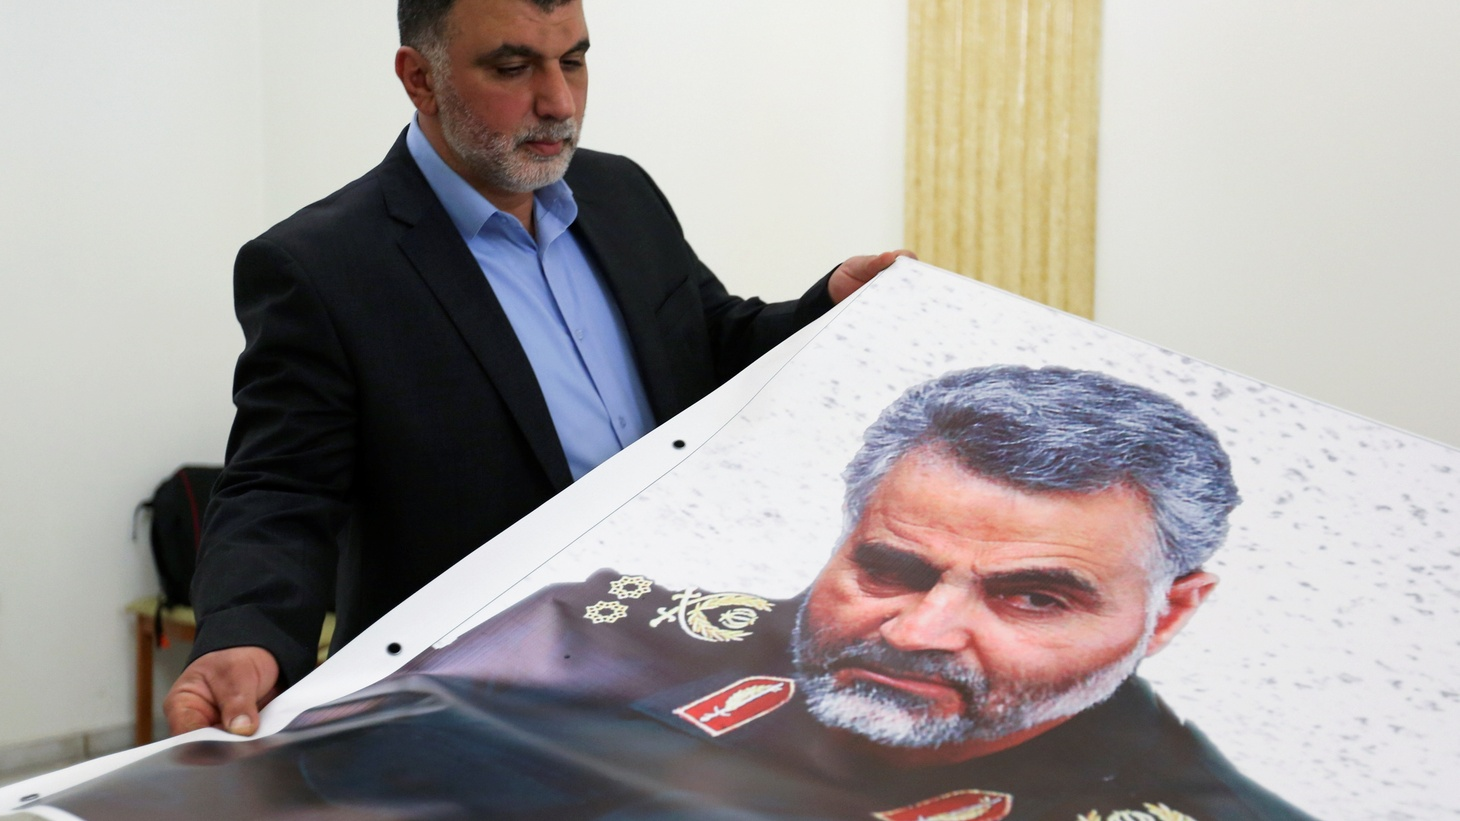 A man holds a banner depicting late Major-General Qassem Soleimani, head of the elite Quds Force, who was killed in a U.S. airstrike Near Baghdad, at the Iranian embassy in Beirut, Lebanon January 3, 2020.